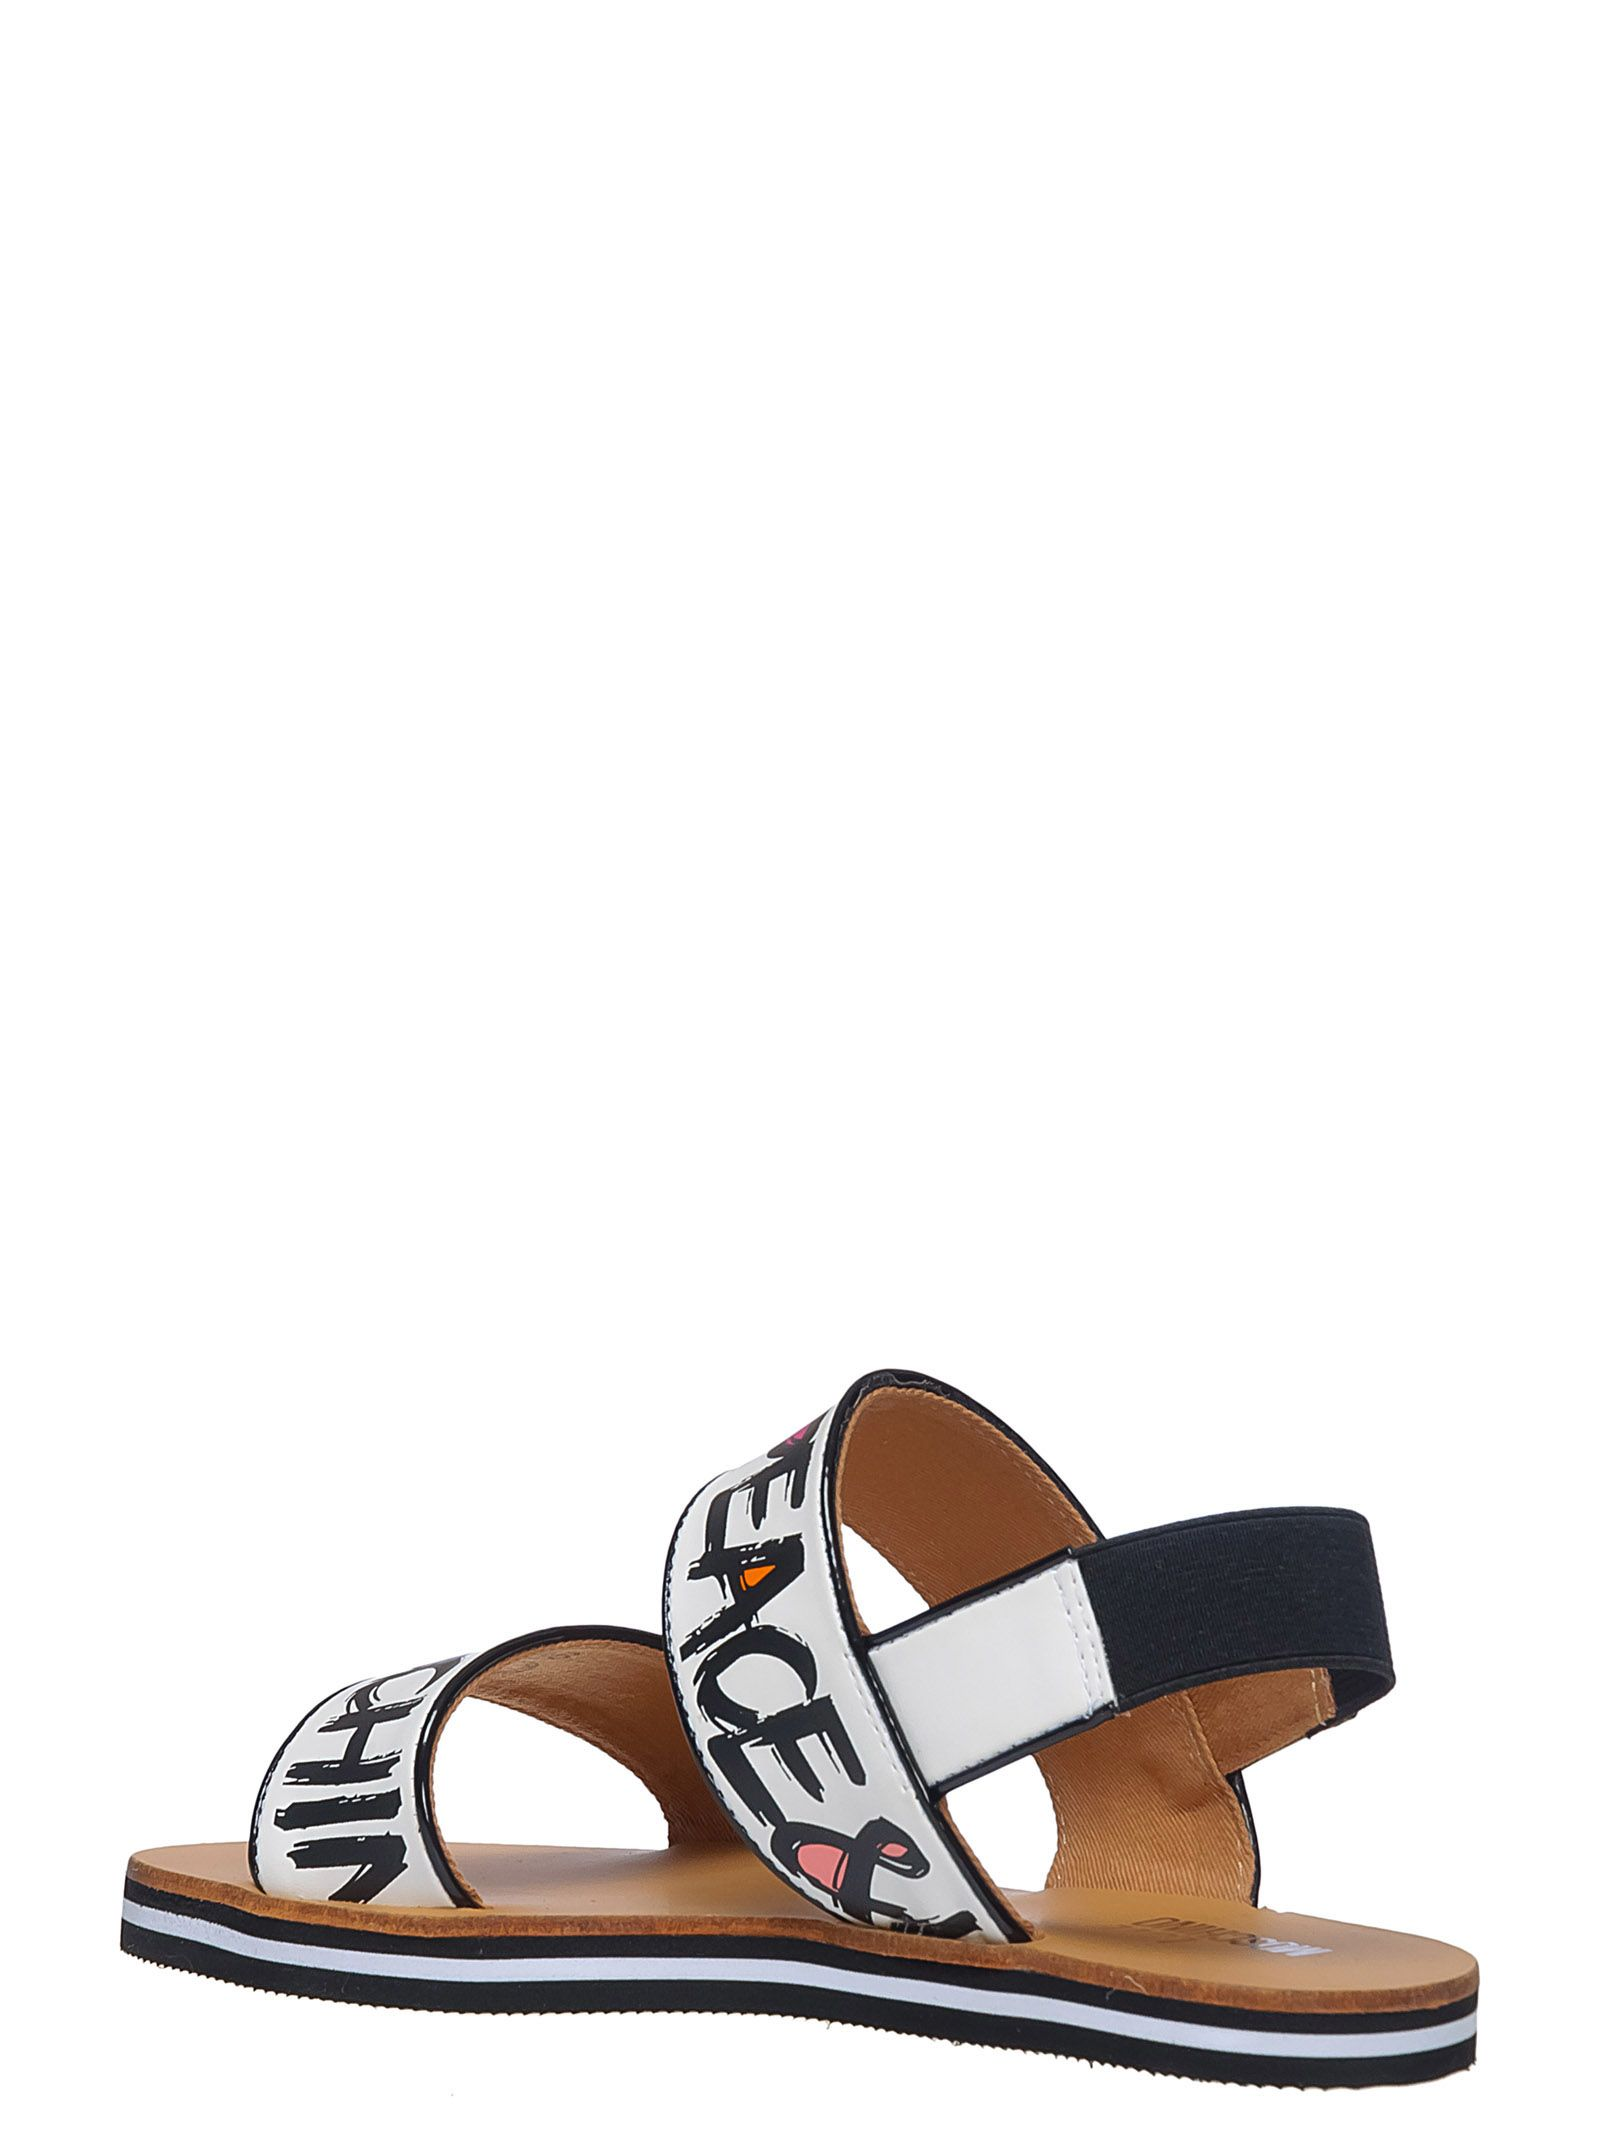 Moschino Leather Sandals ggn3aB9bC